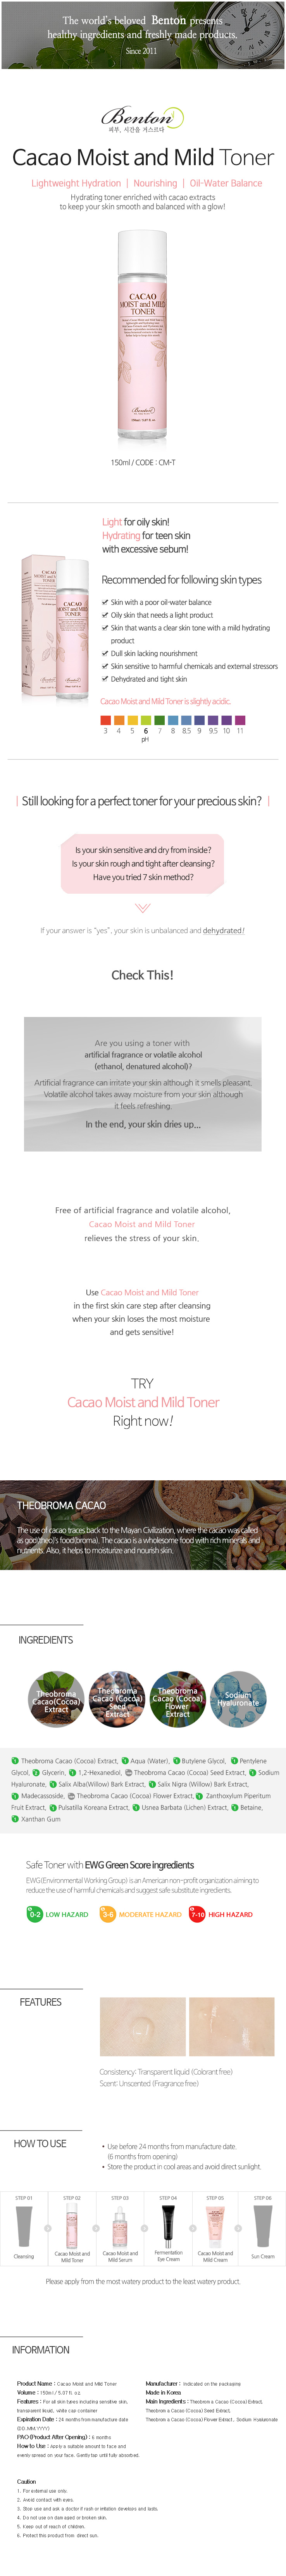 [Benton] Cacao Moist and Milk Toner 150ml Skin-Friendly Hydrating The Skin And Relieves The Stress